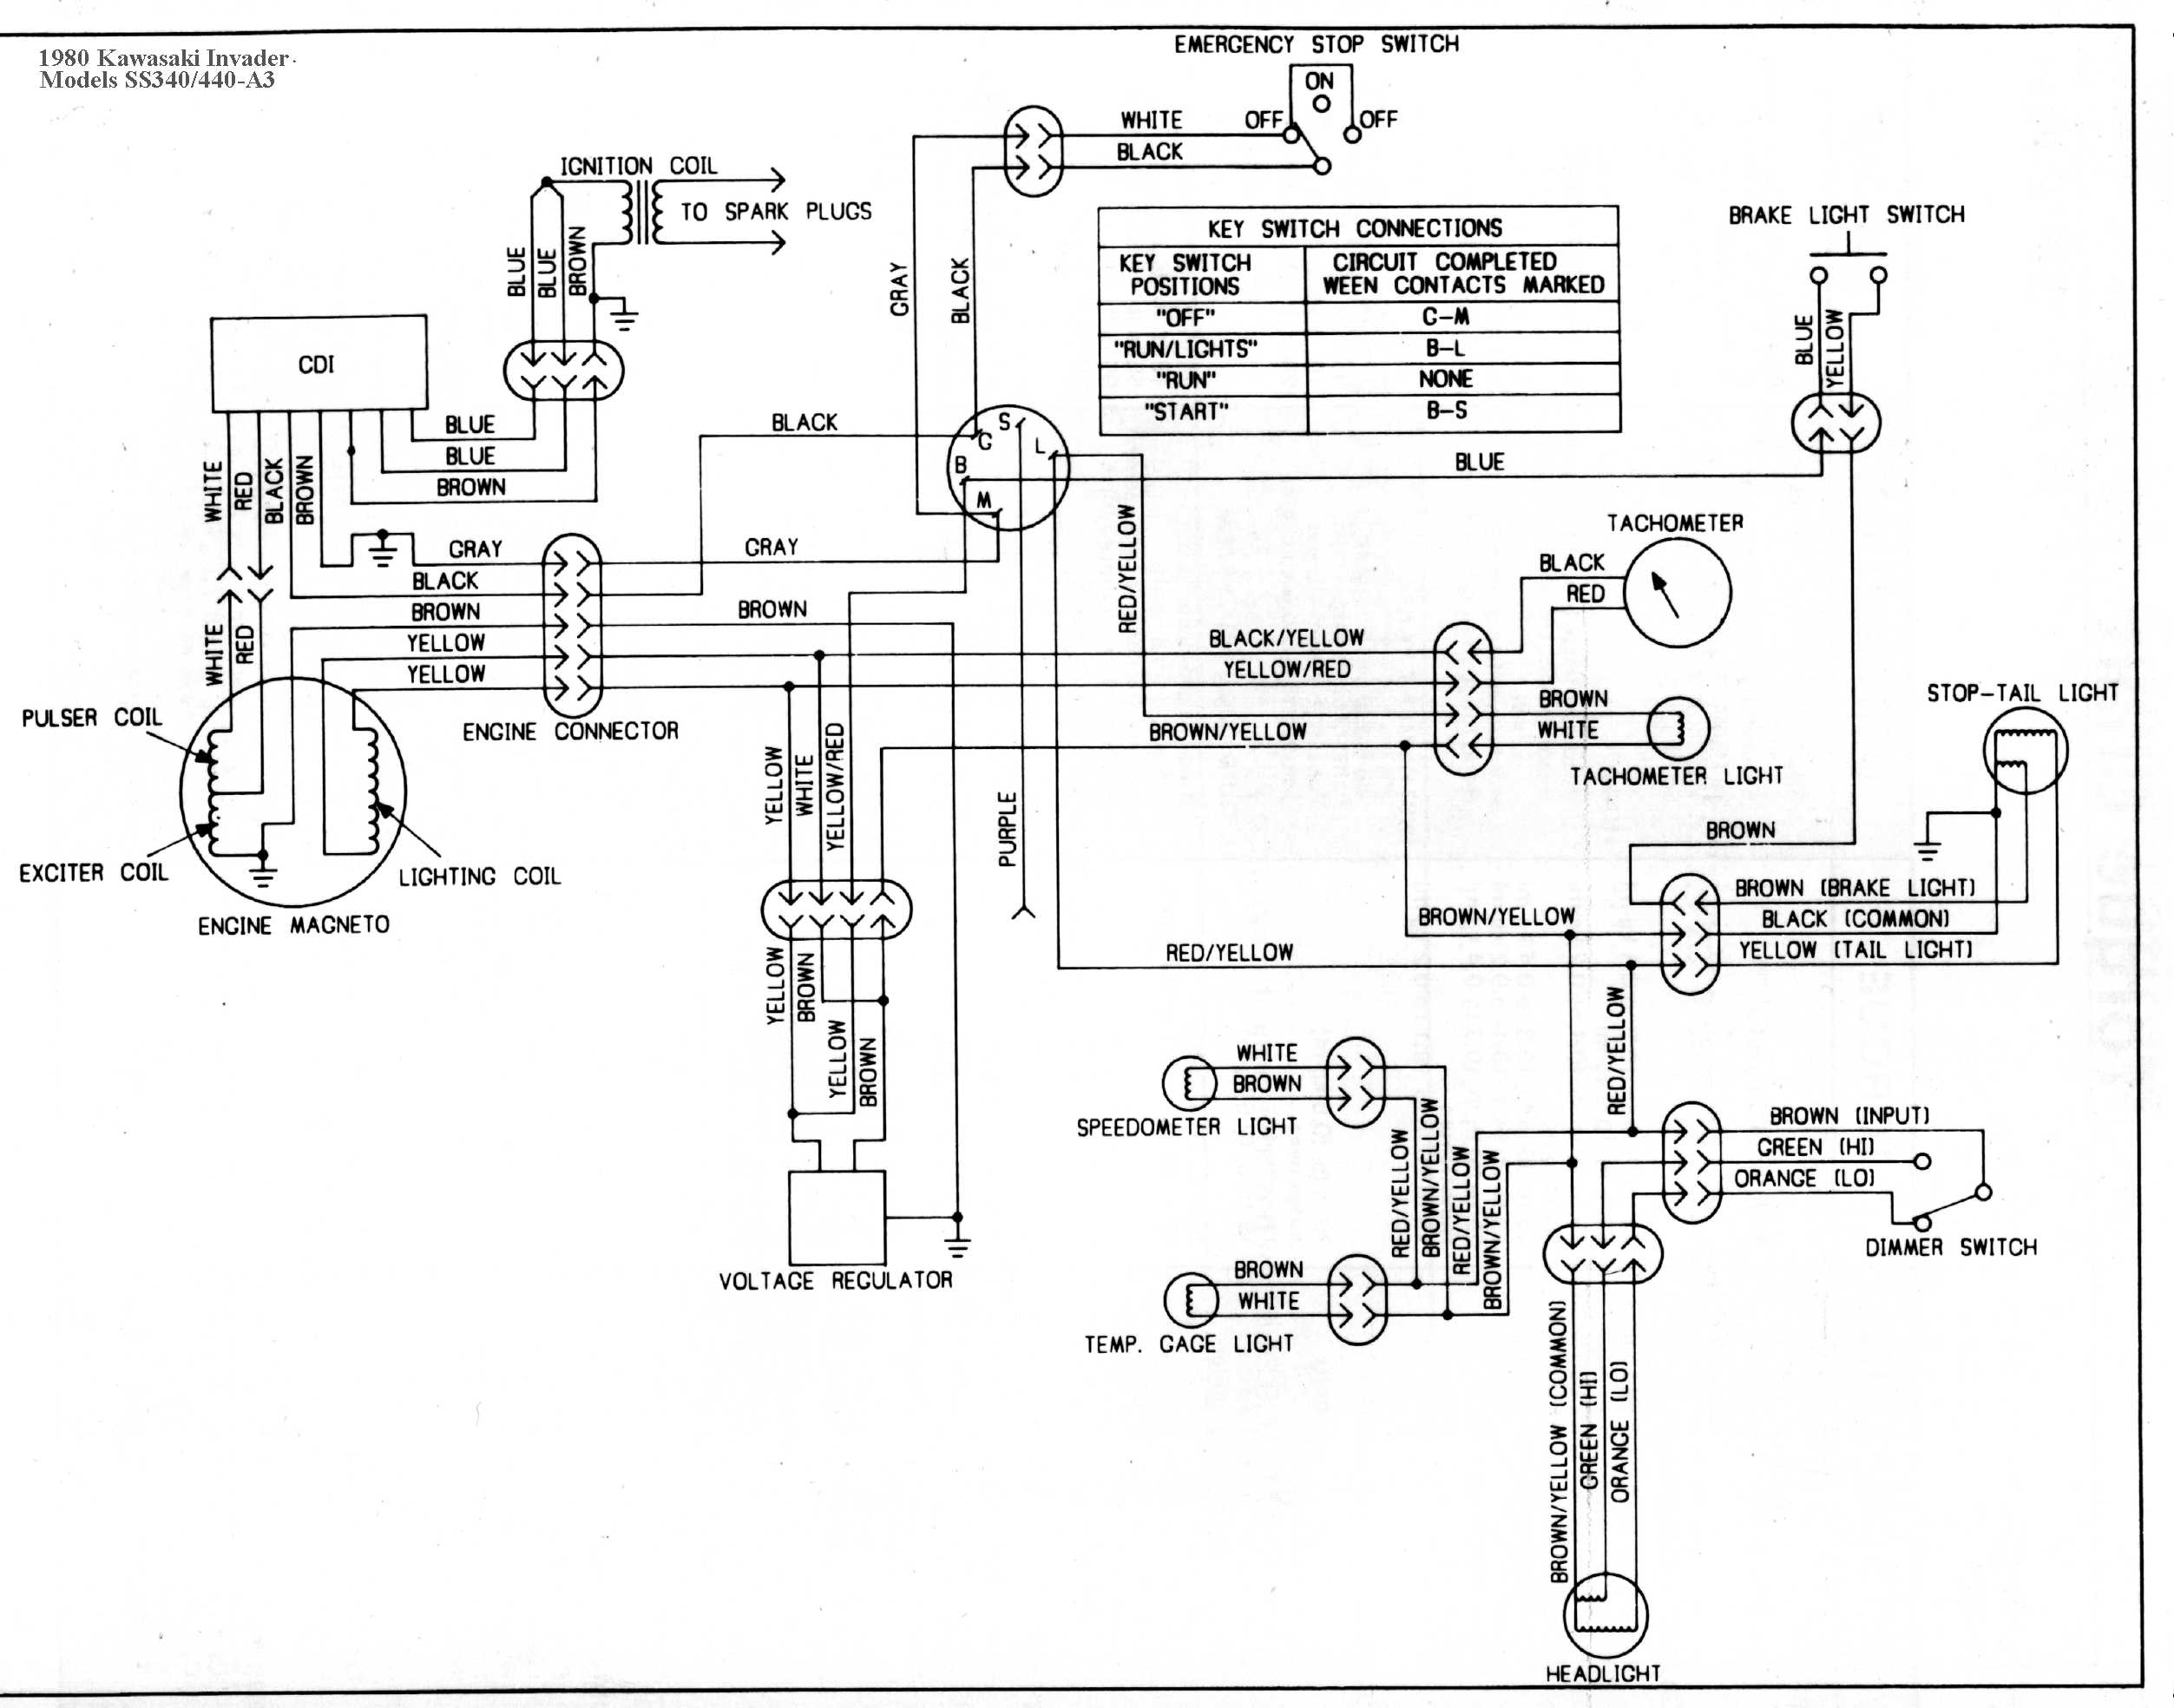 ss340a3 kawasaki invader snowmobile wiring diagrams  at eliteediting.co